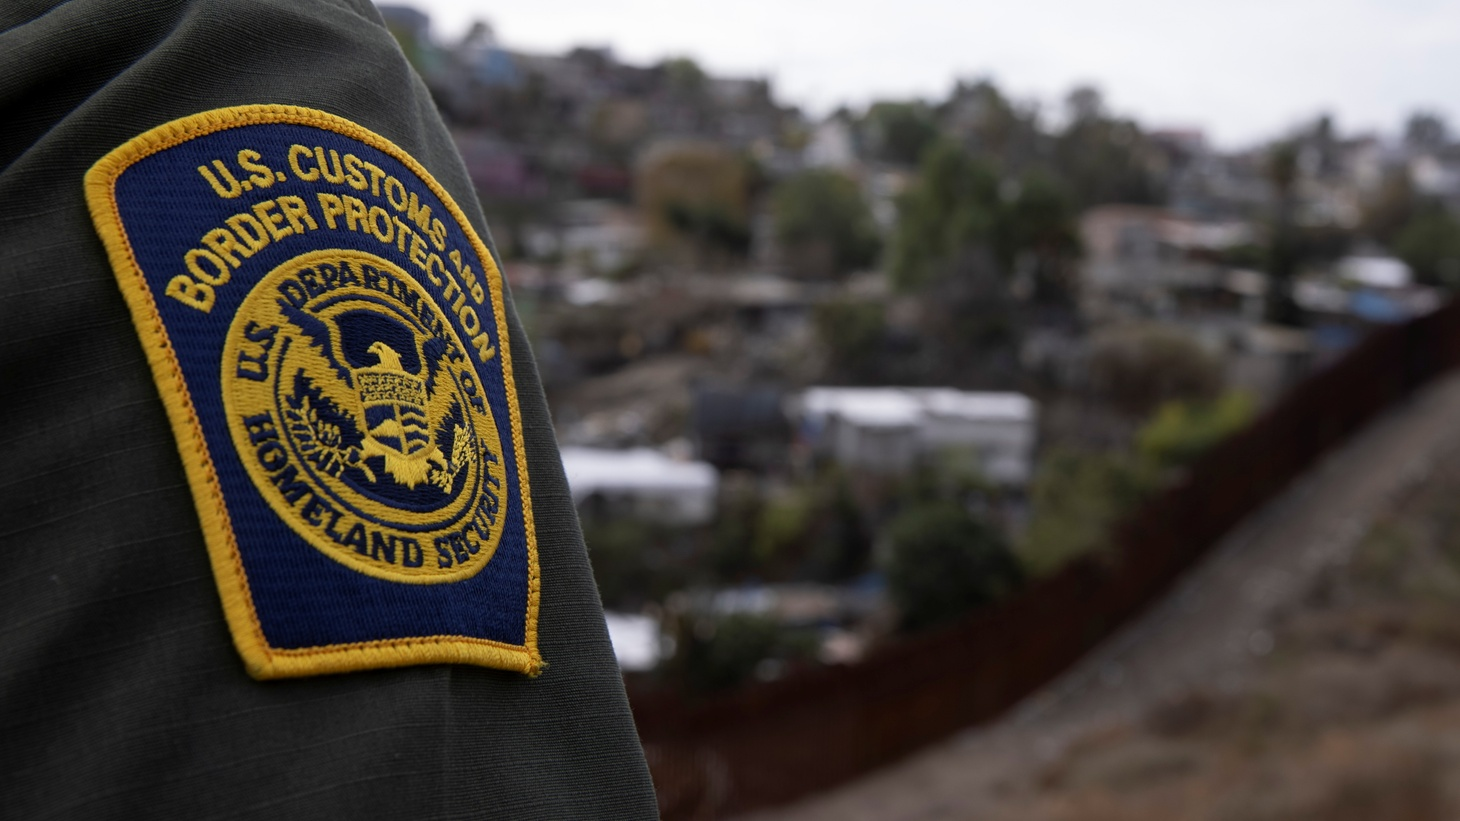 A U.S. border patrol agent looks out over Tijuana, Mexico from the U.S.-Mexico border wall in San Diego, California, U.S., February 2, 2021.